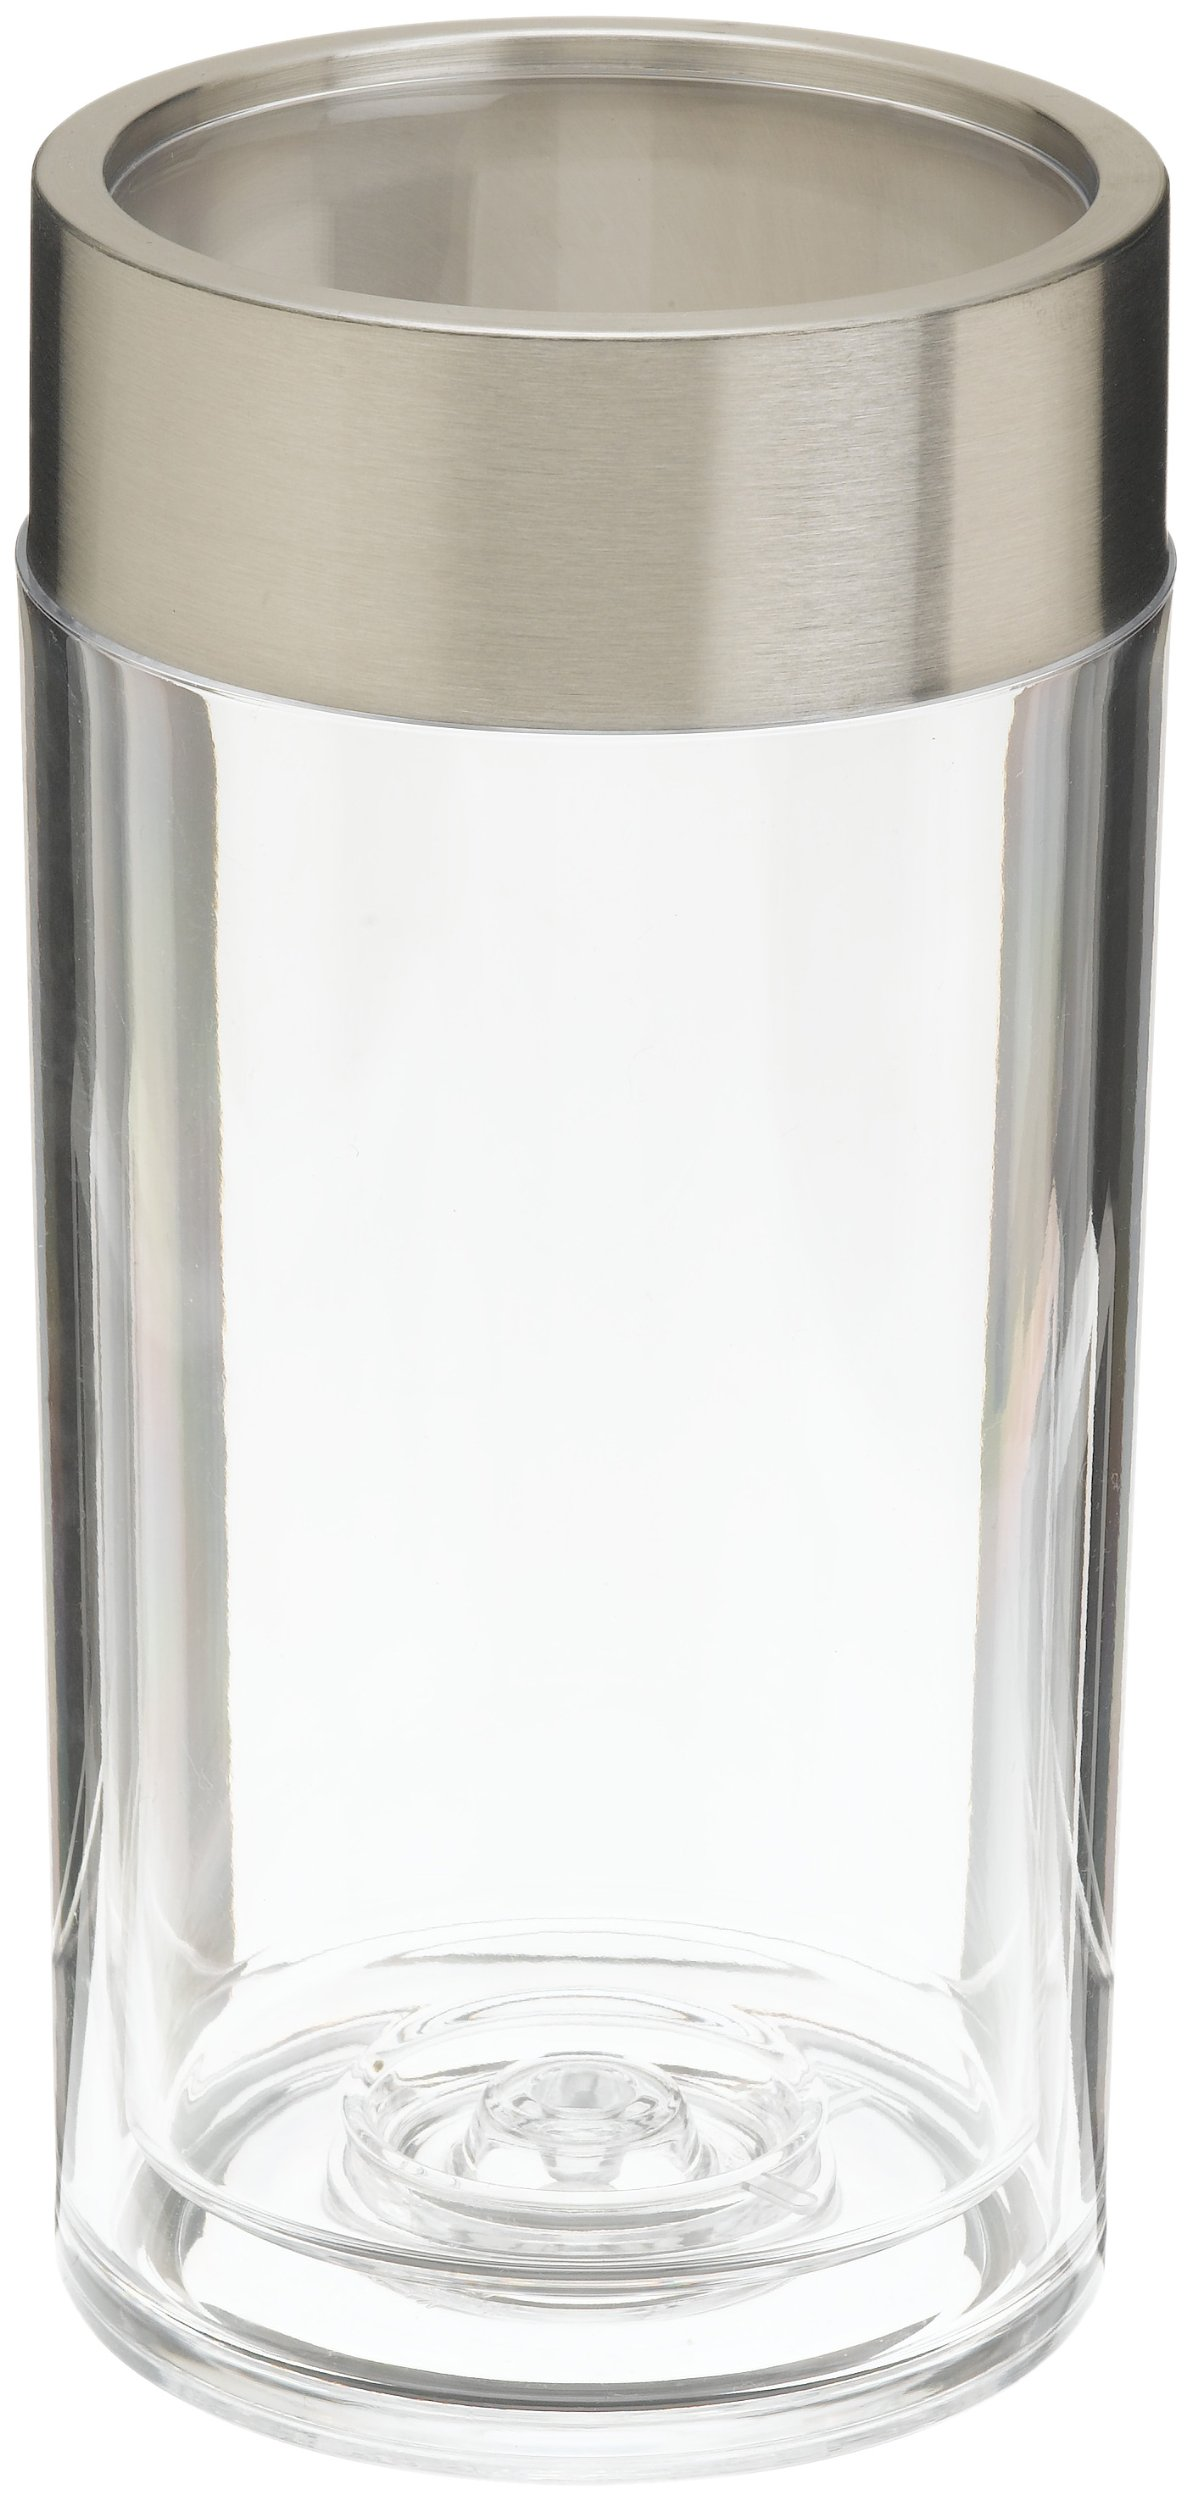 Prodyne A-901 Thick Acrylic and Stainless Steel Iceless Wine Cooler by Prodyne